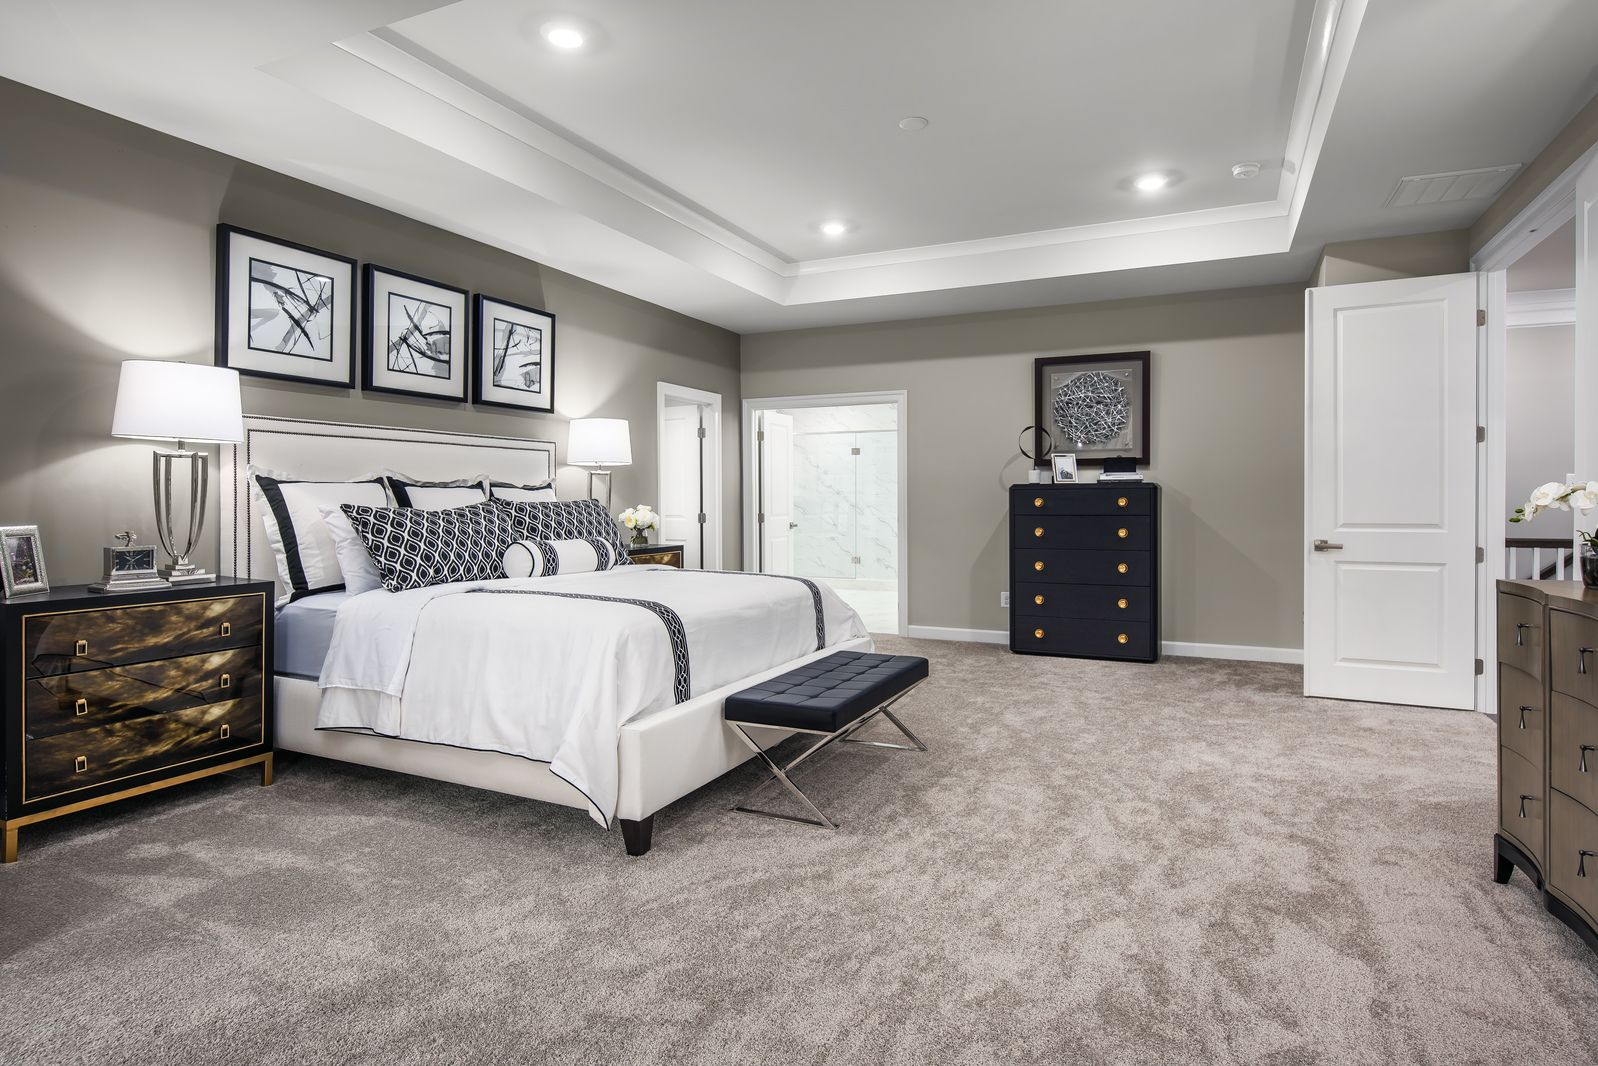 Bedroom featured in the Clifton Park II By NVHomes in Washington, VA